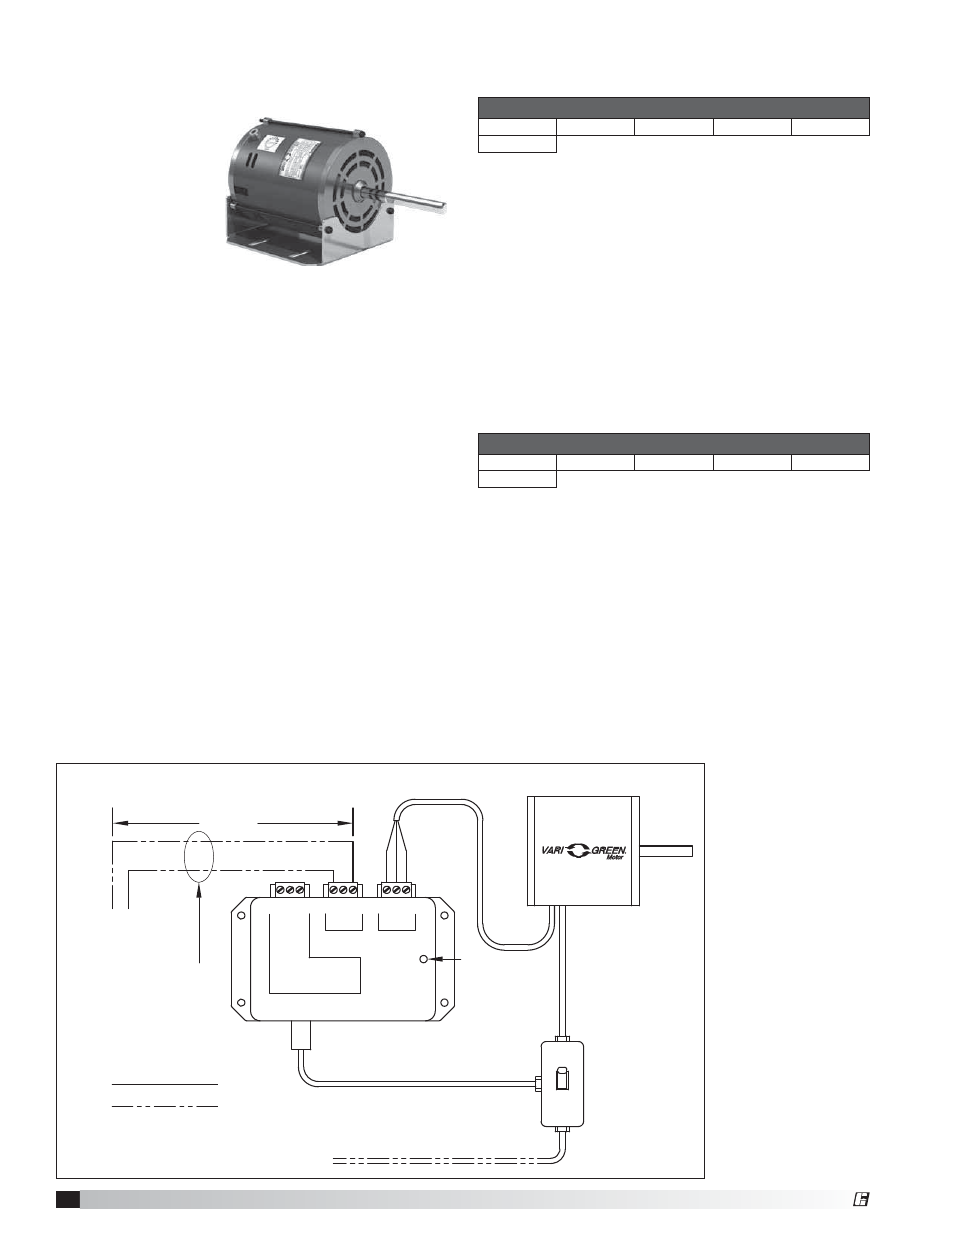 operation and wiring  transformer assembly